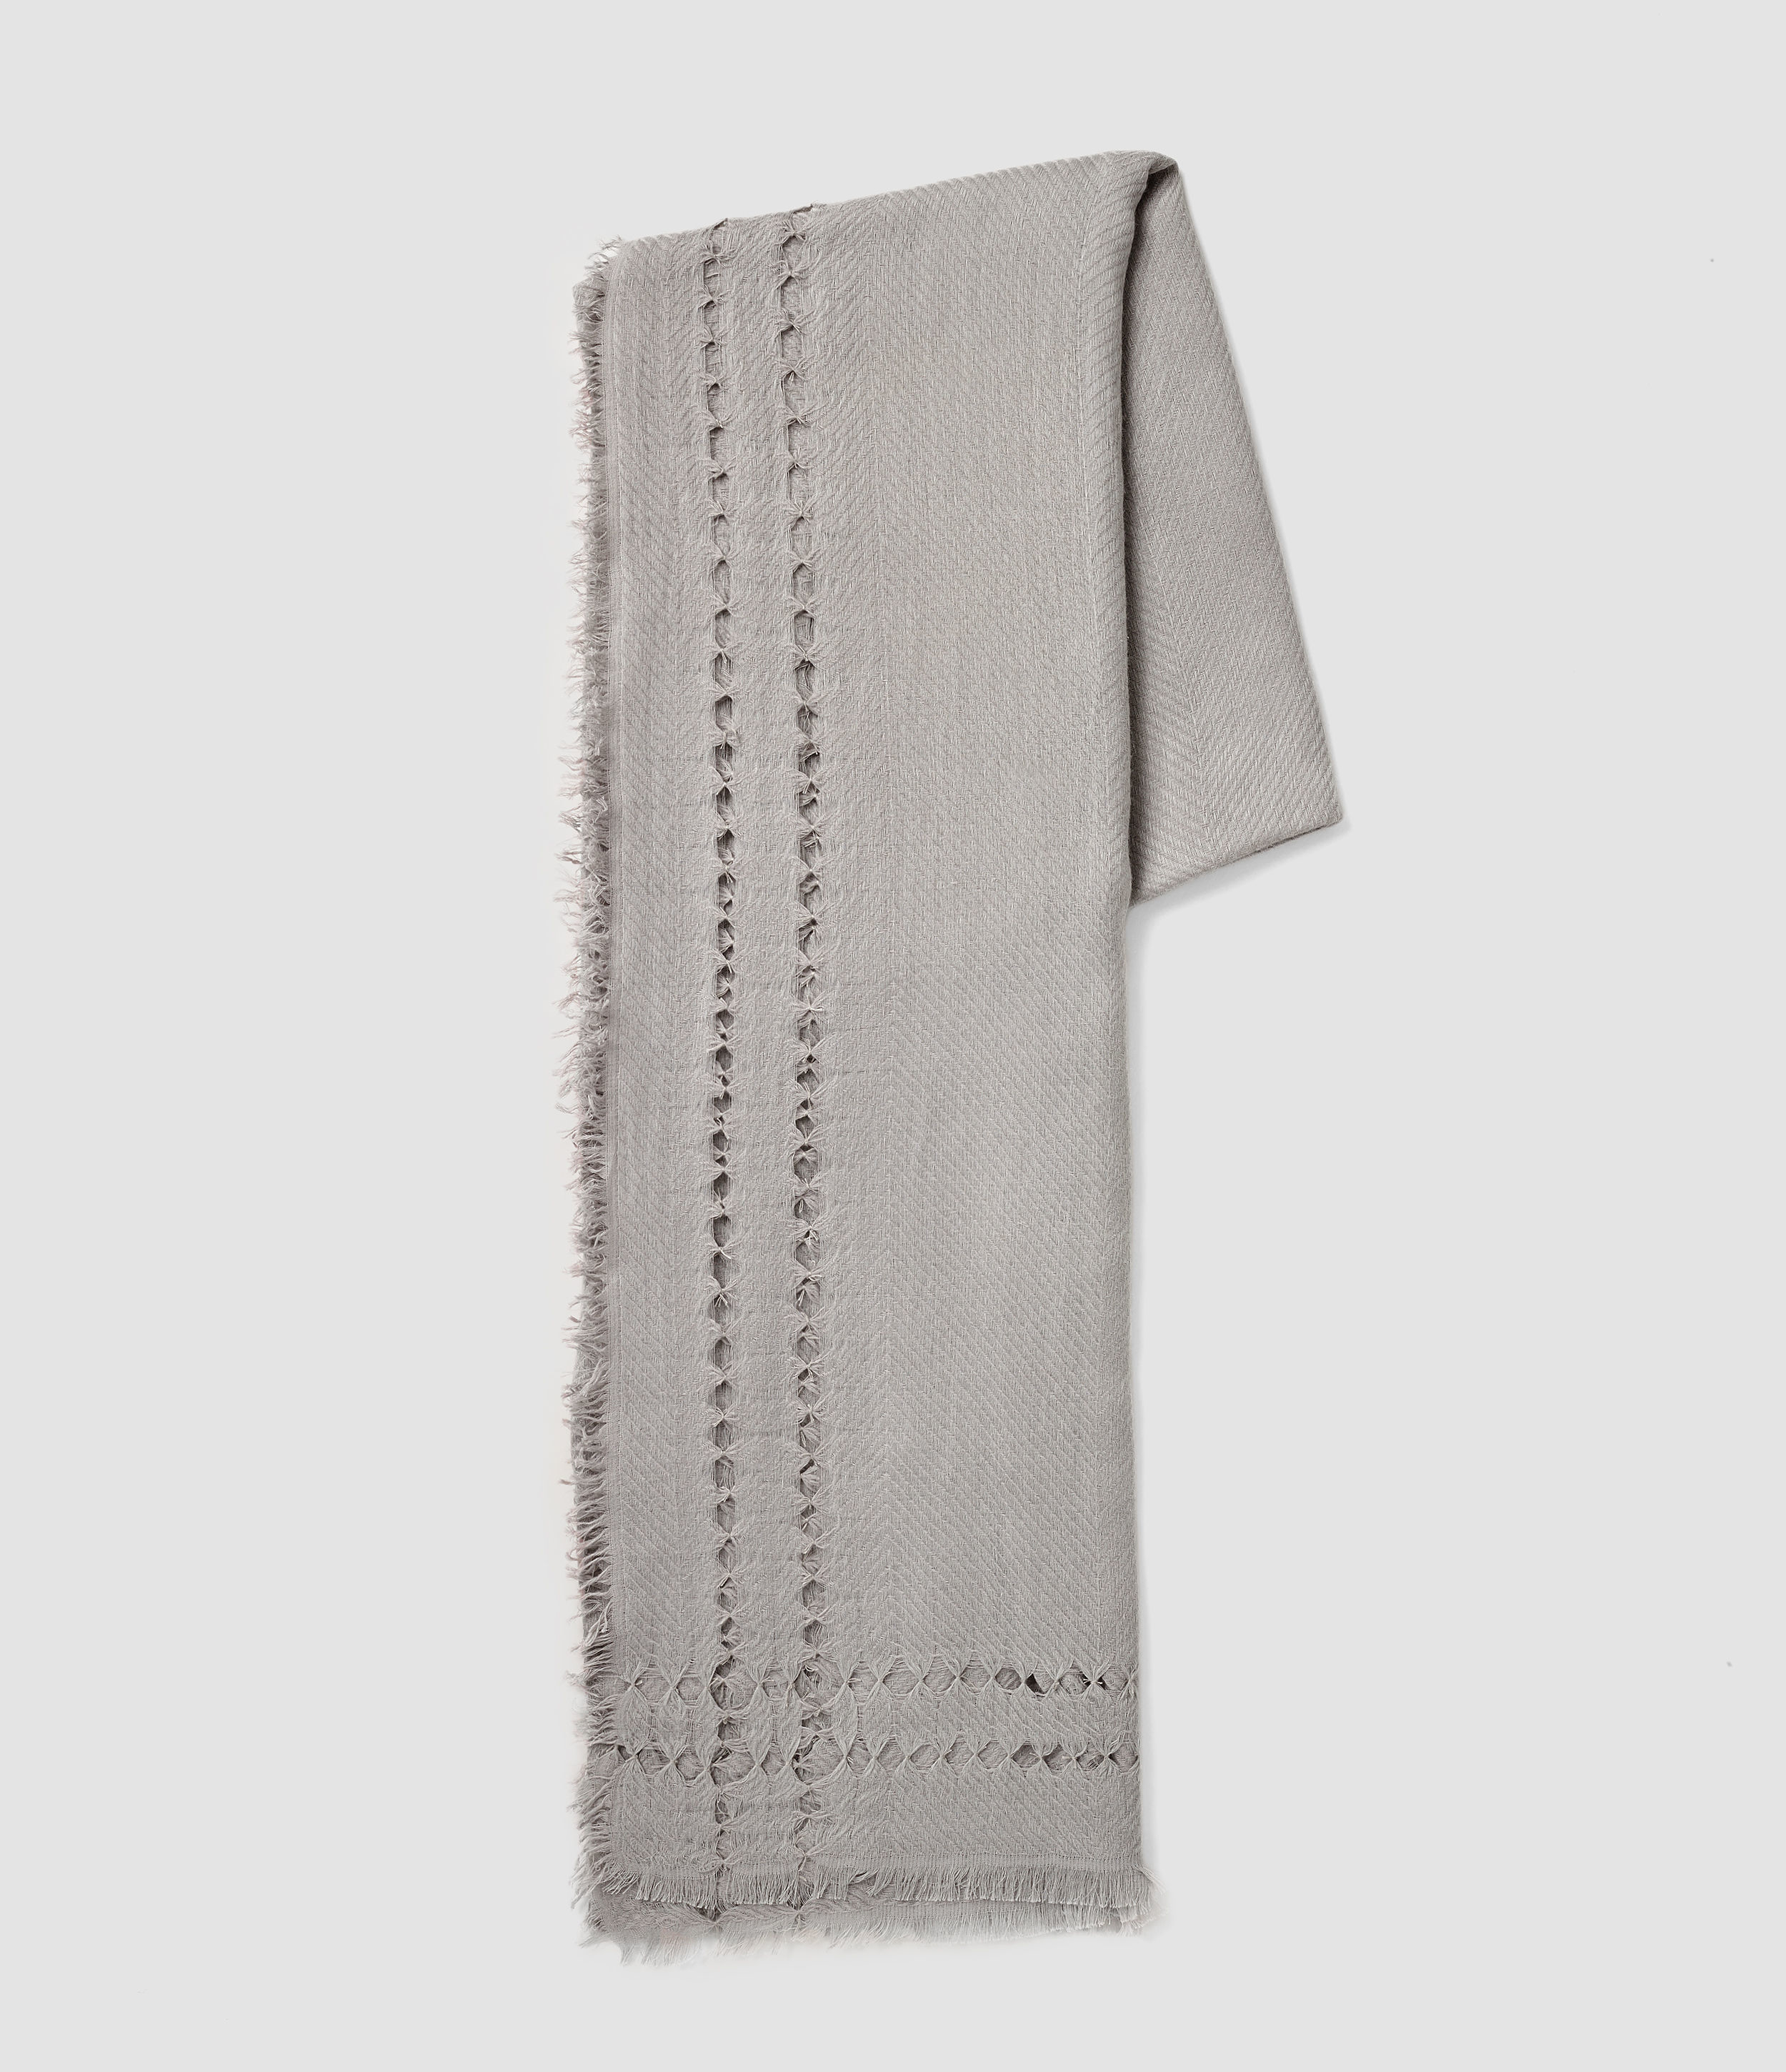 Allsaints Spine Scarf in Gray